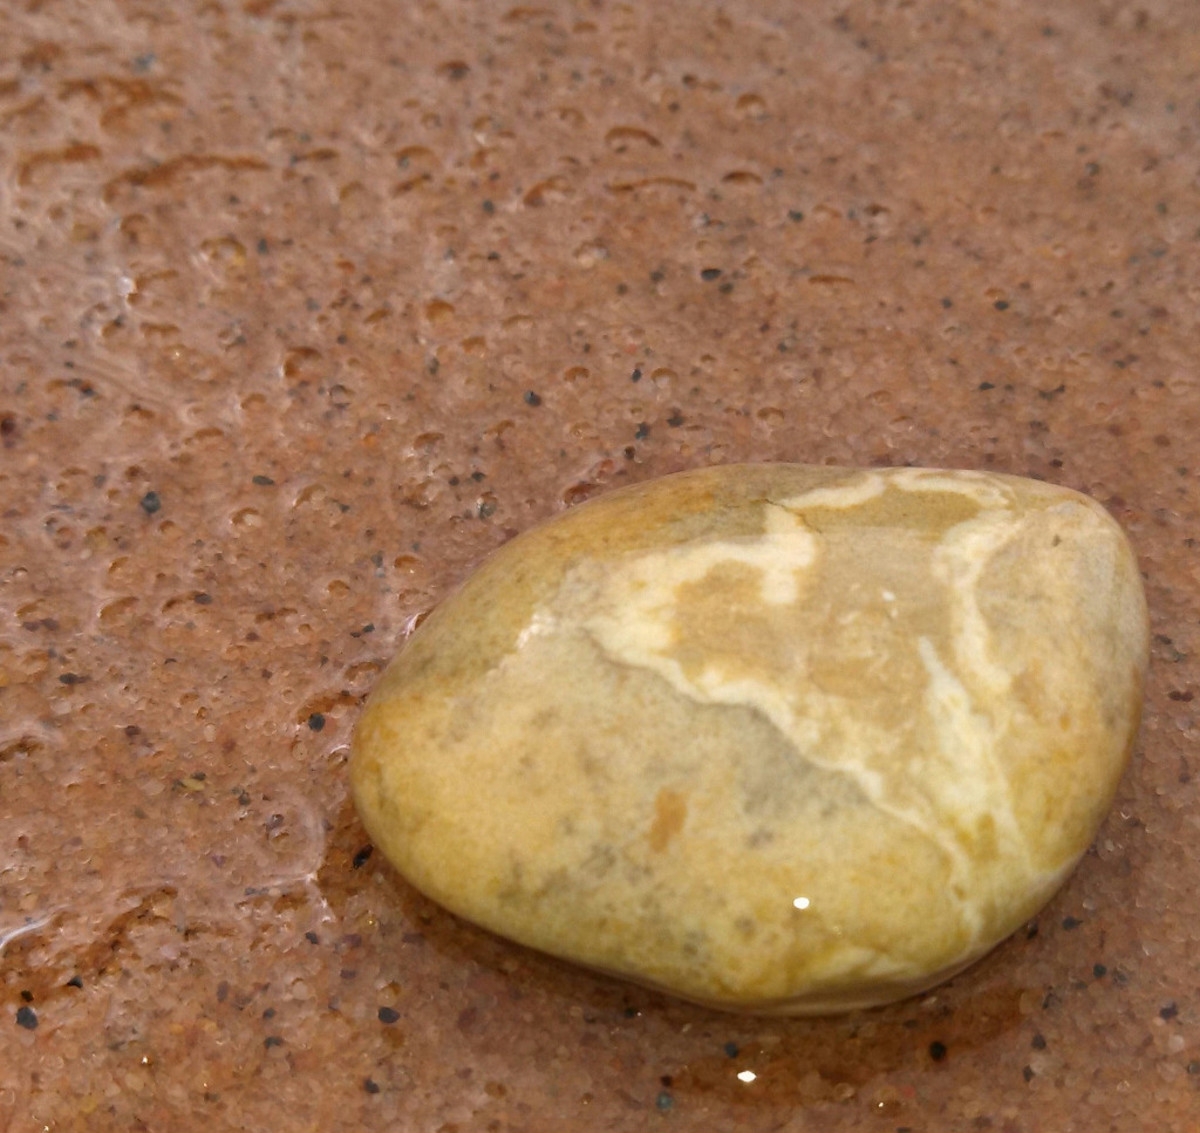 Natural stone found on the south shore of Lake Superior